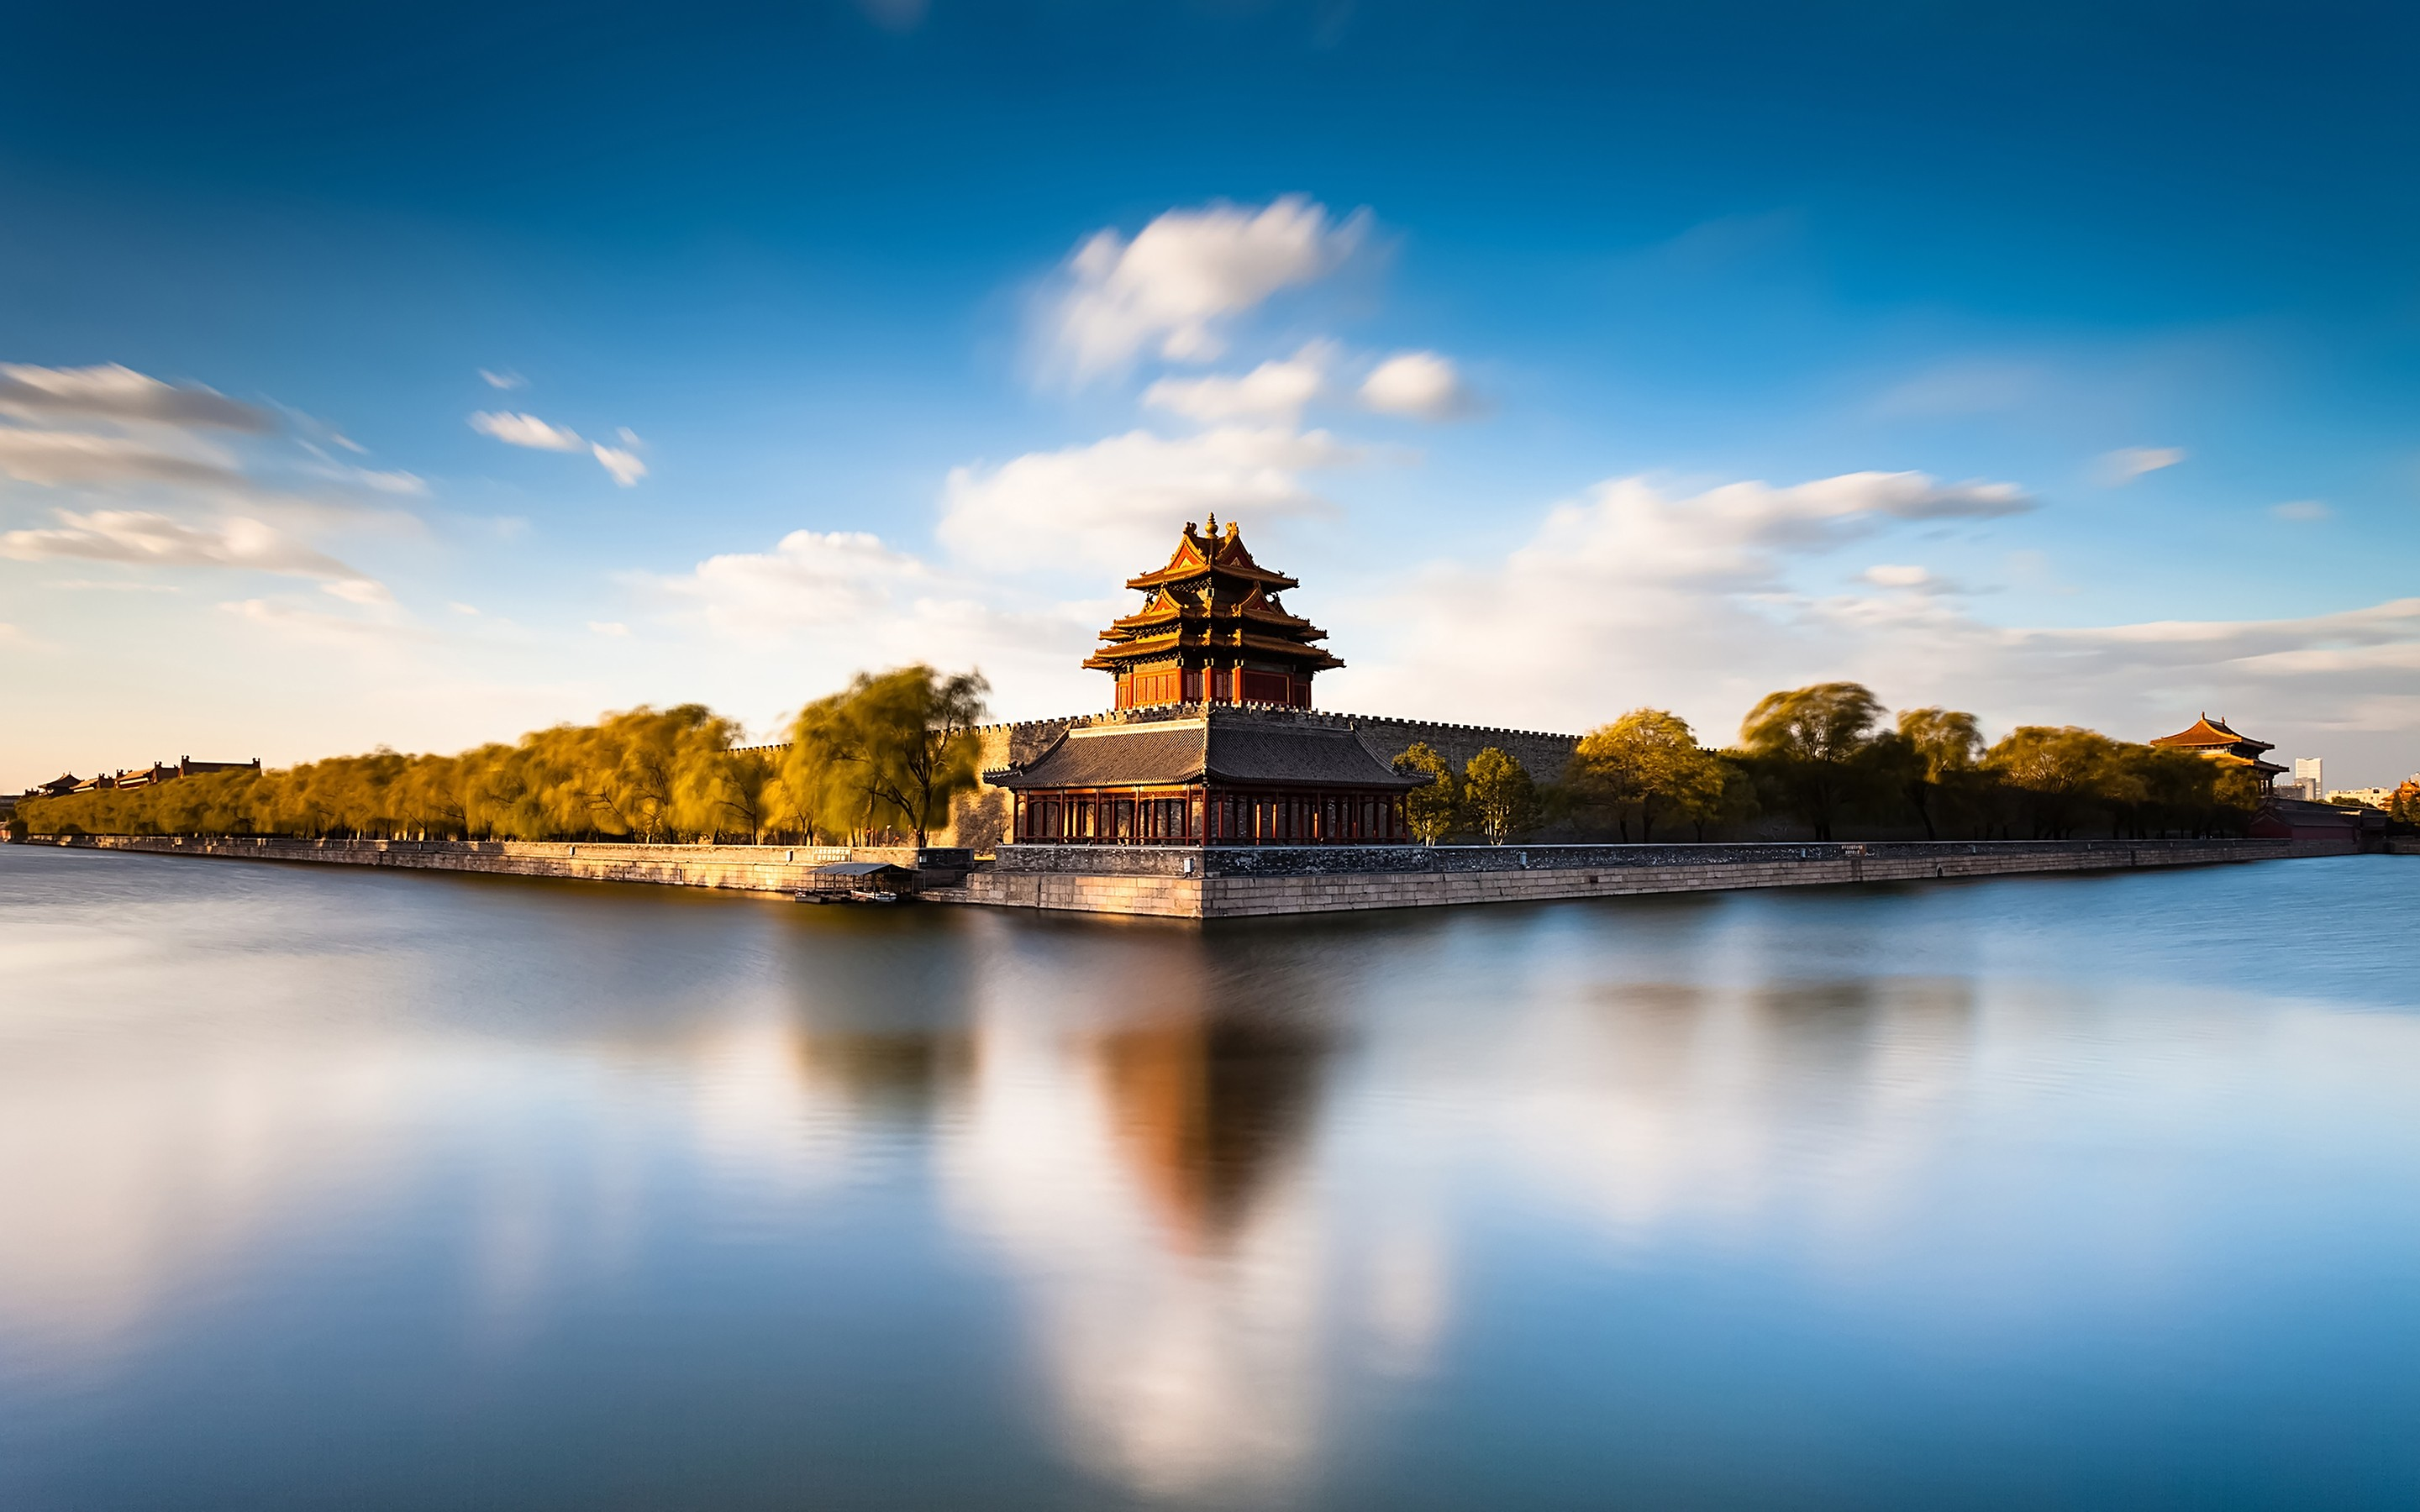 Forbidden city beijing hd world 4k wallpapers images for World popular images